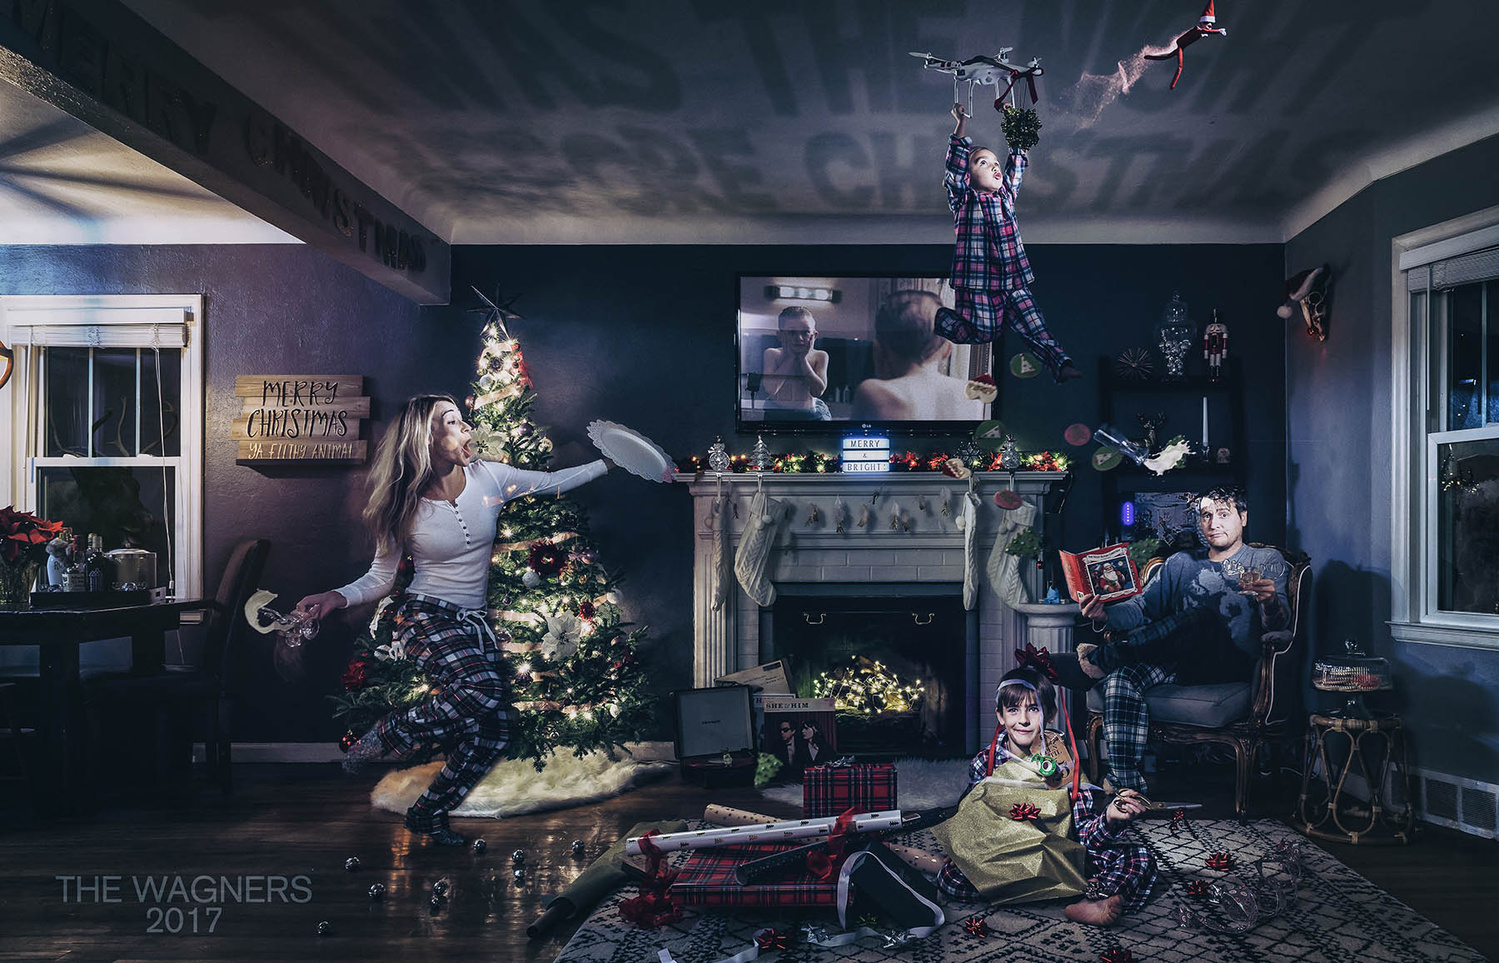 Twas The Night Before Christmas by Robert Wagner